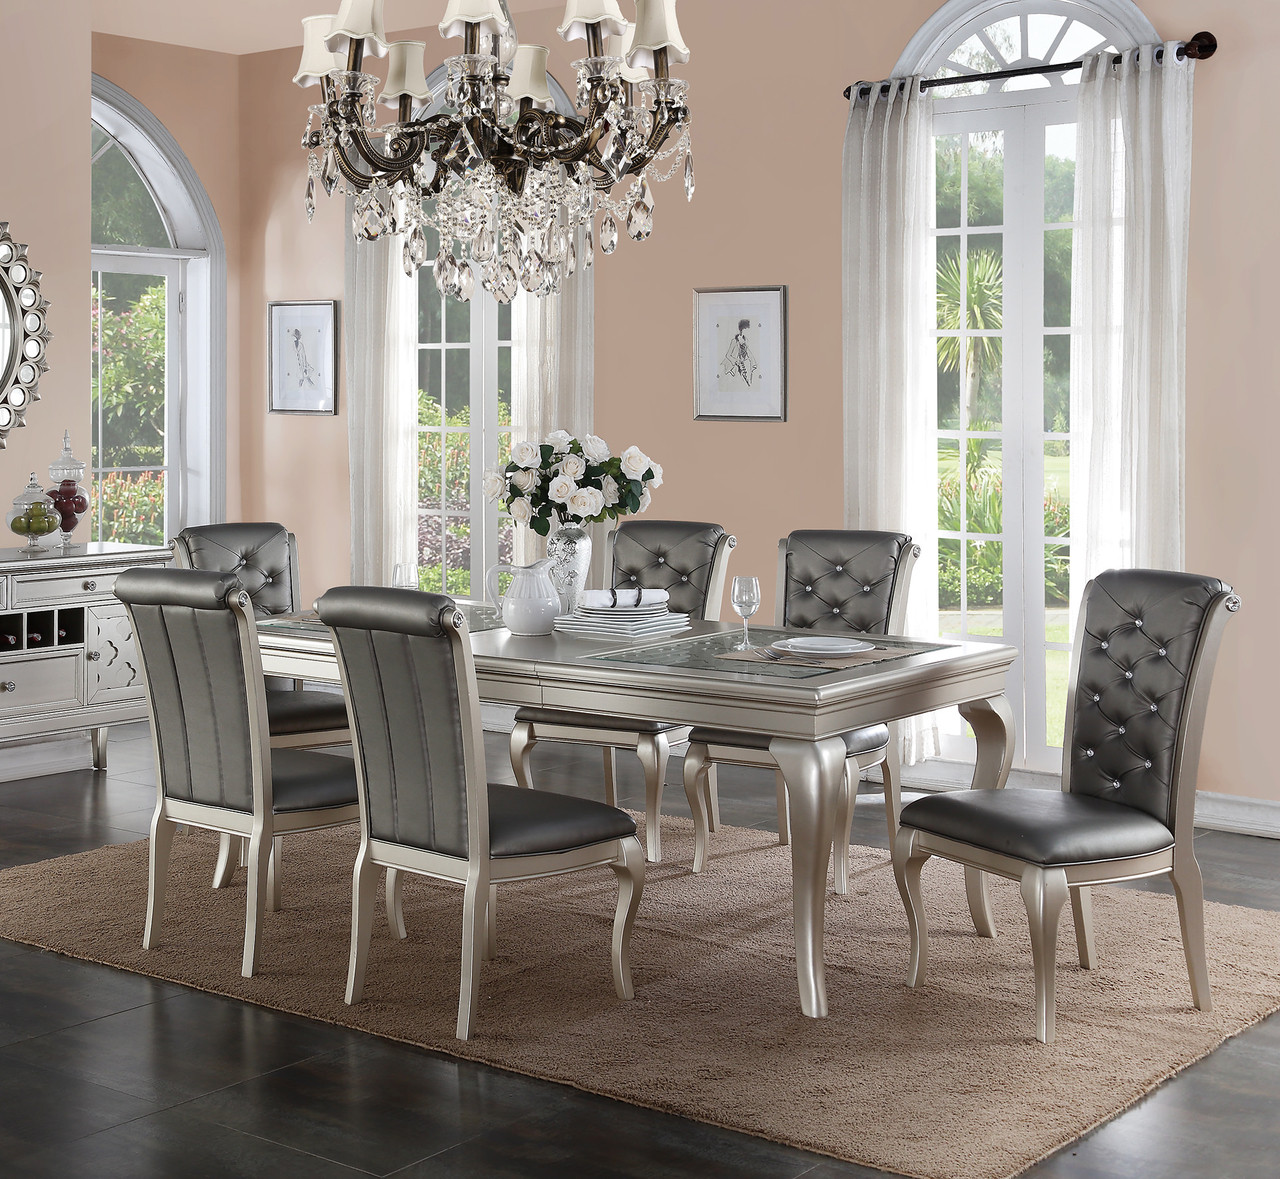 Silver Dining Chairs Poundex F2151 Metallic Silver Dining Table With Chairs